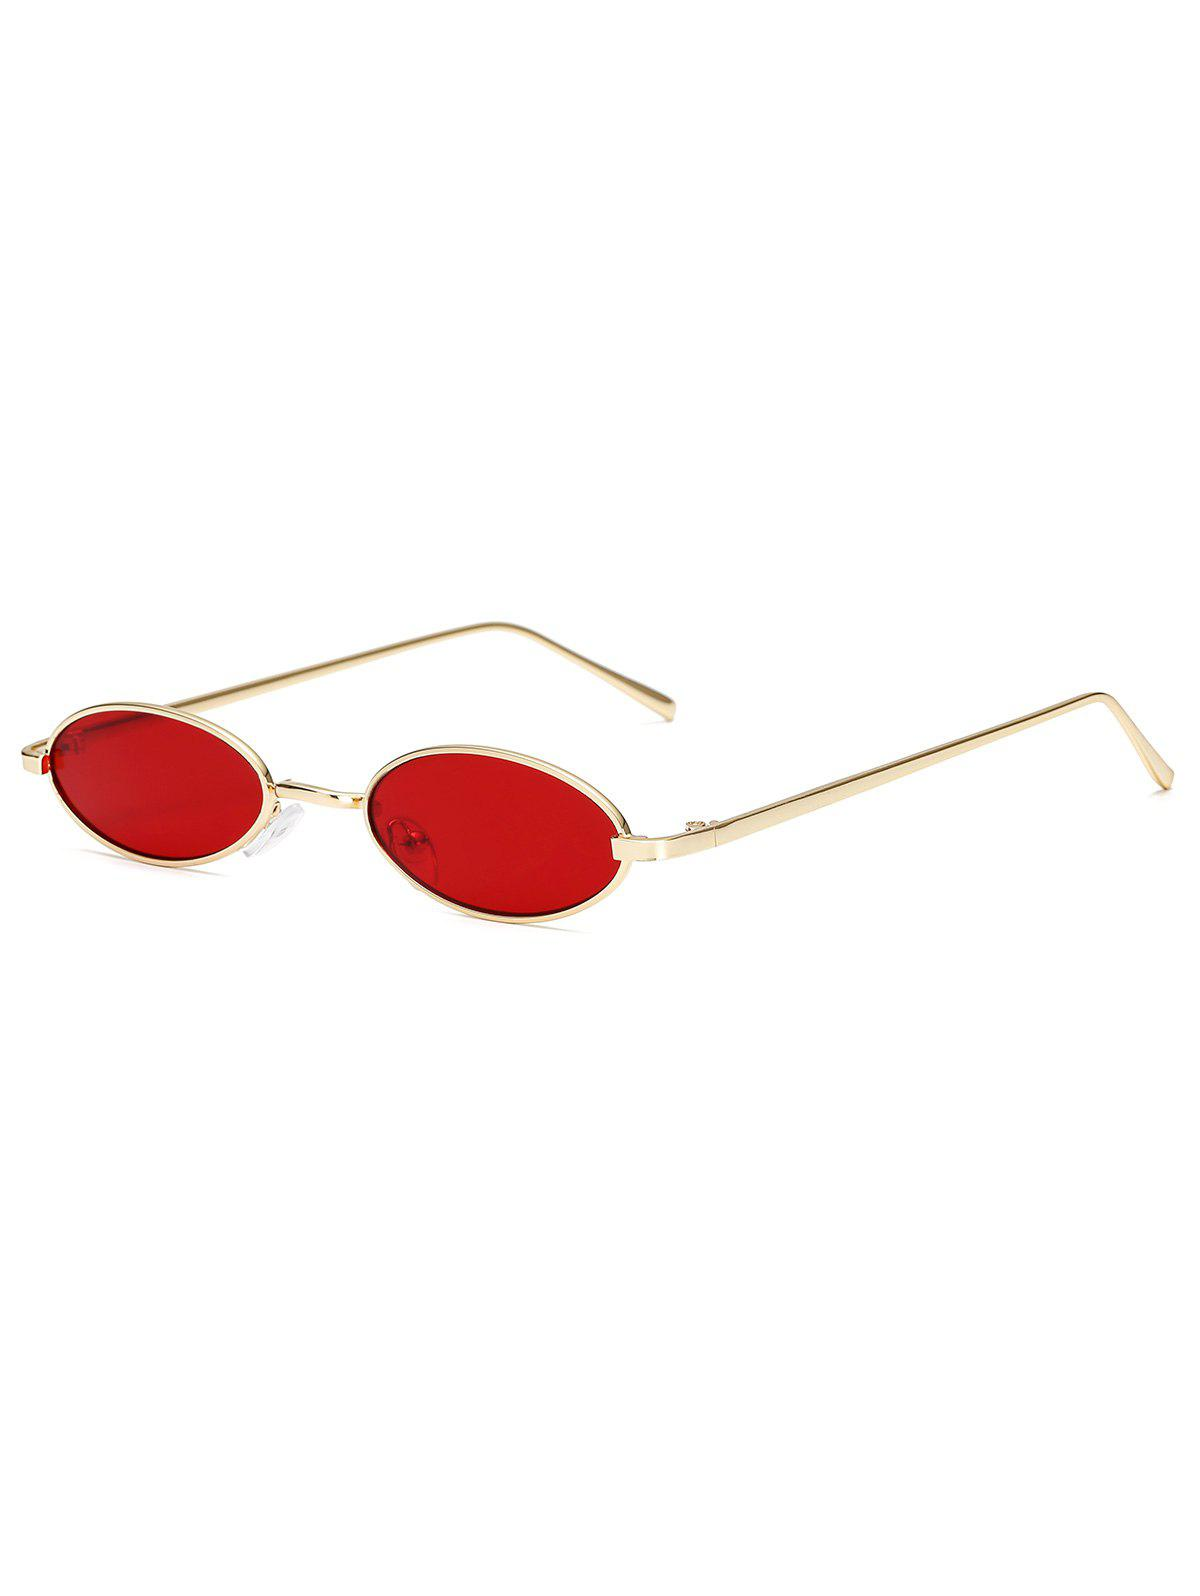 Small Vintage Oval Metal Sunglasses - RED WINE